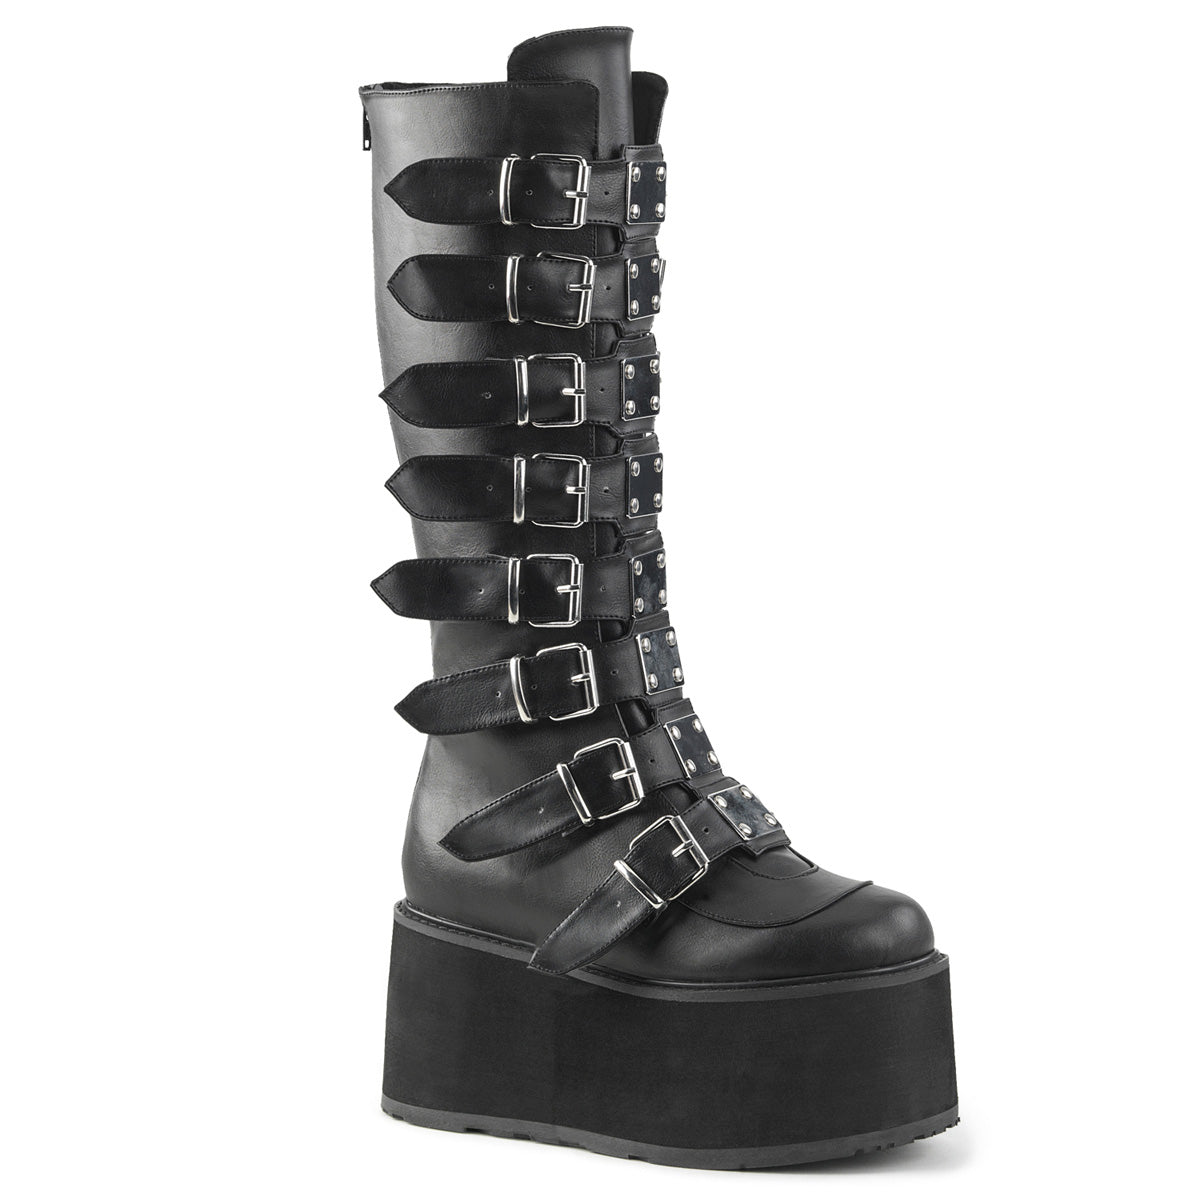 DAMNED-318 Black Vegan Leather